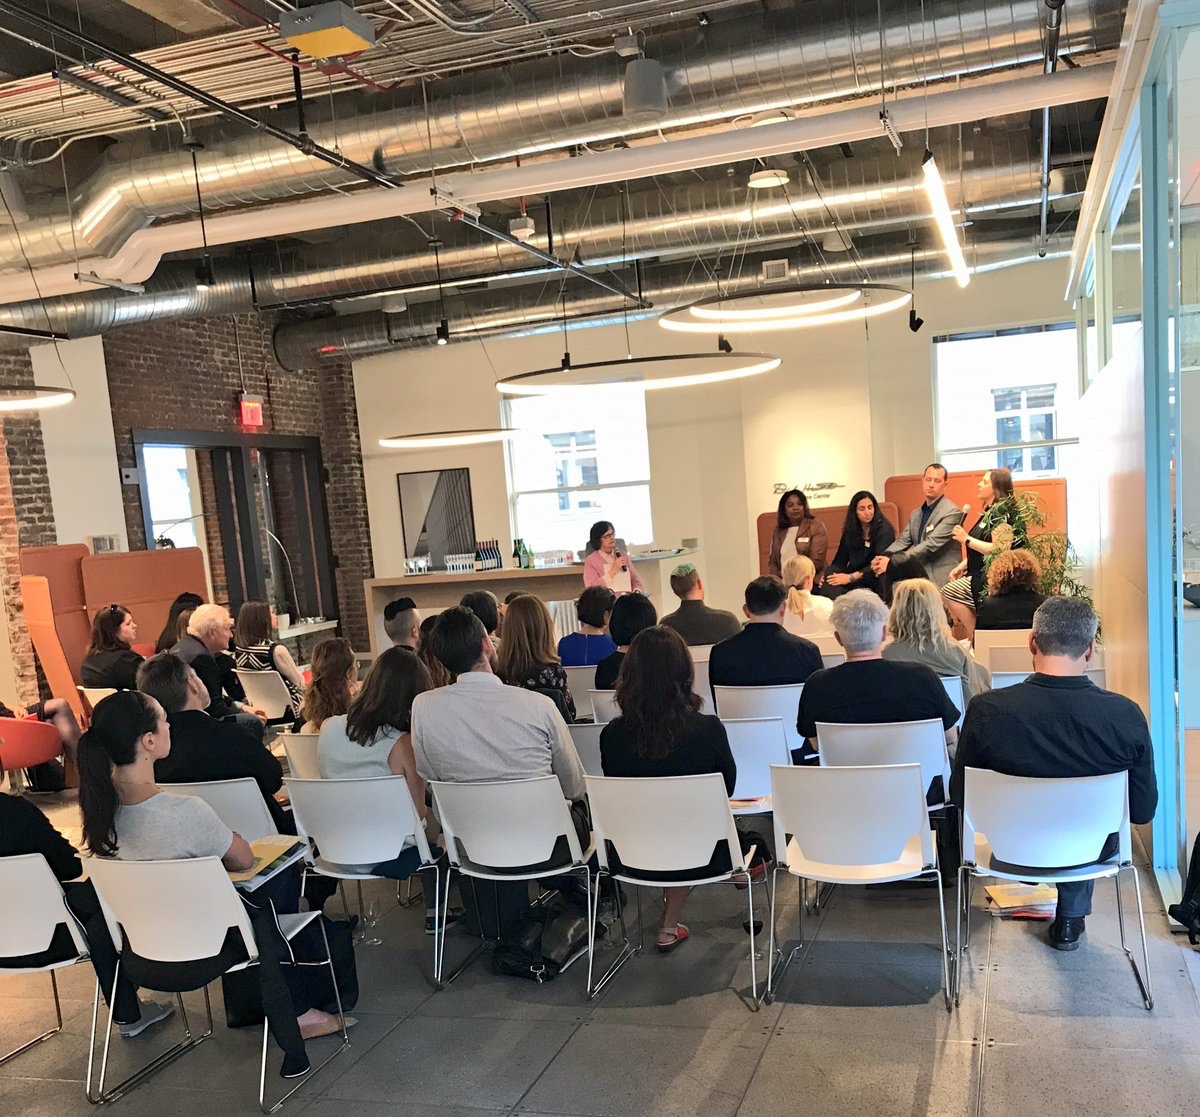 MetropolisMag  Happening Now: The Business Case for Well-Being in the Workplace @Equinix @GenslerOnWork @randy_howder @HDR_Inc @trmaher_1 pic.twitter.com/6pW5UbAk7H  Jun 22, 2017, 8:49 PM